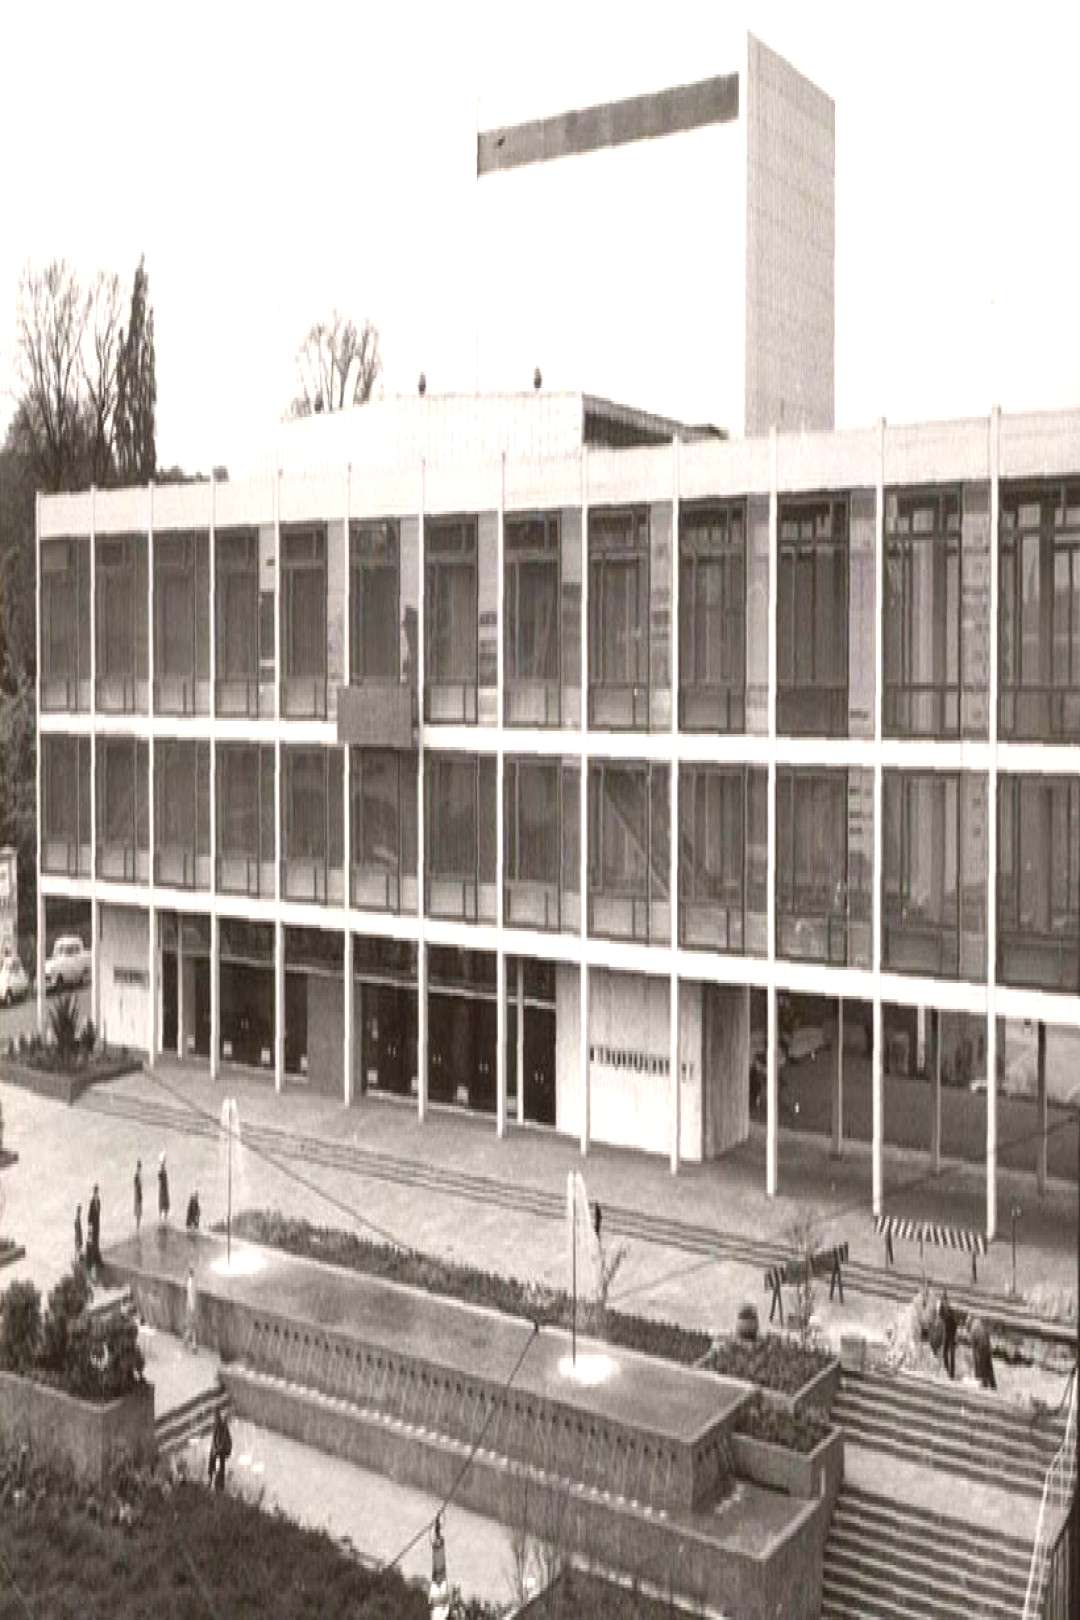 Municipal Theater (1957-59) in Mönchengladbach, Germany, by Paul Stohrer. Demolished. -